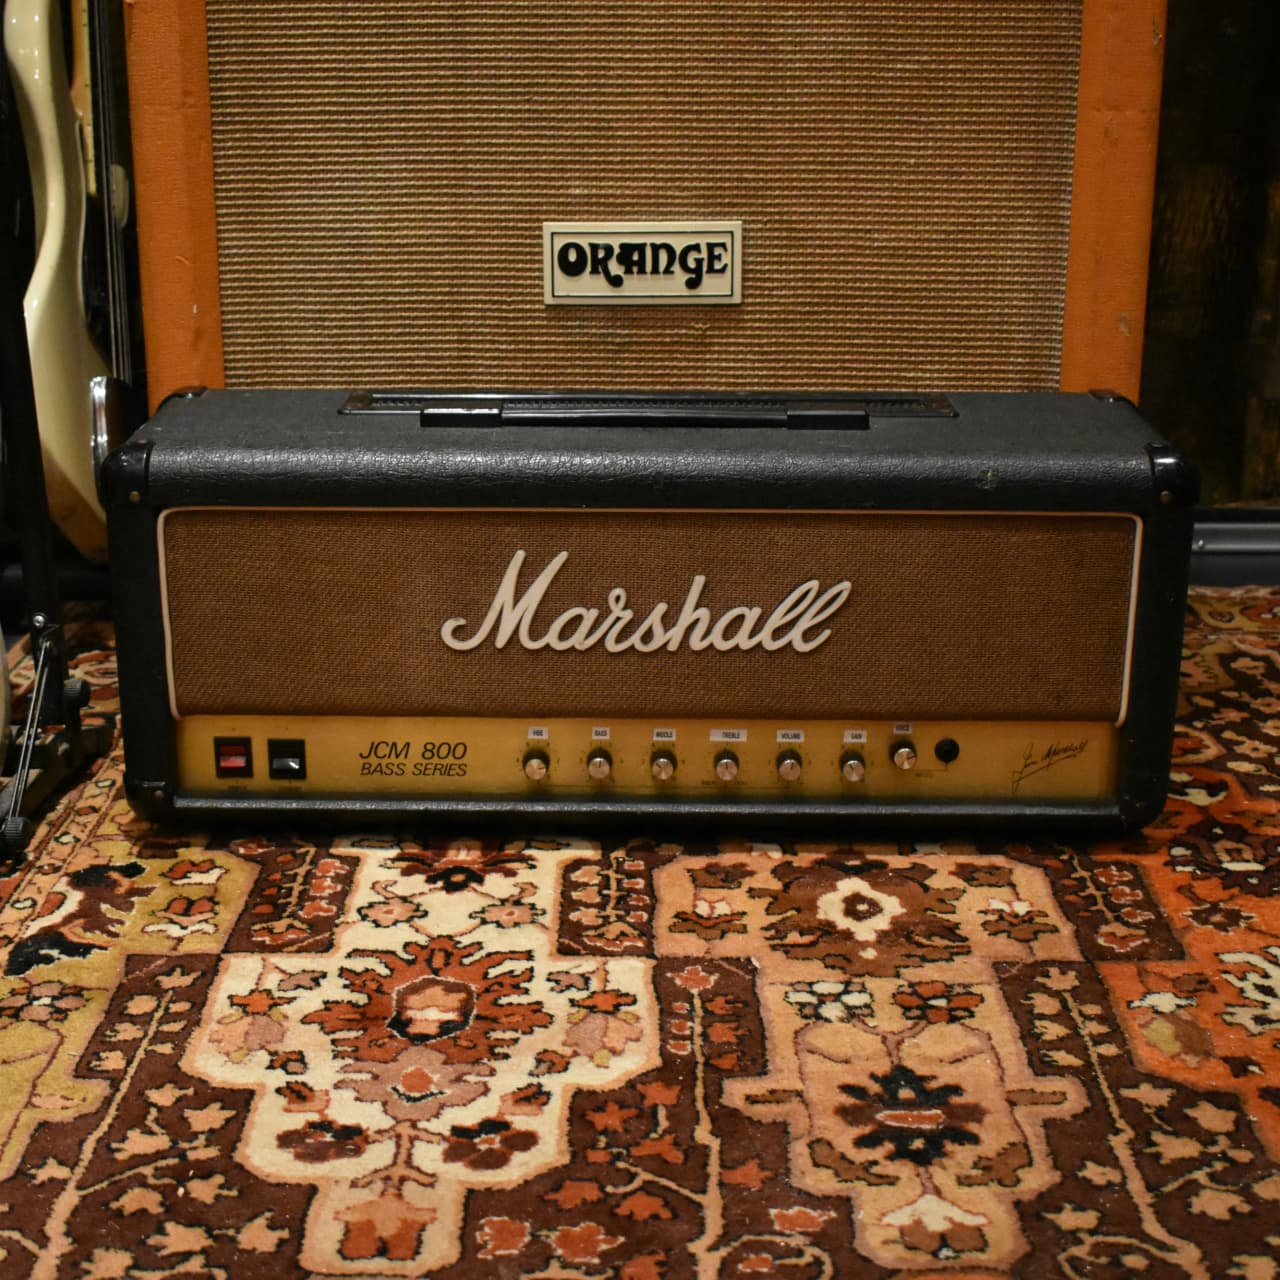 marshall jcm 800 serial number dating 1982 marshall jcm 800 50w 2204 head cab amps preamps marshall cabinet serial numbers www cintronbeveragegroup com marshall cabinet serial numbers www cintronbeveragegroup com dating a.